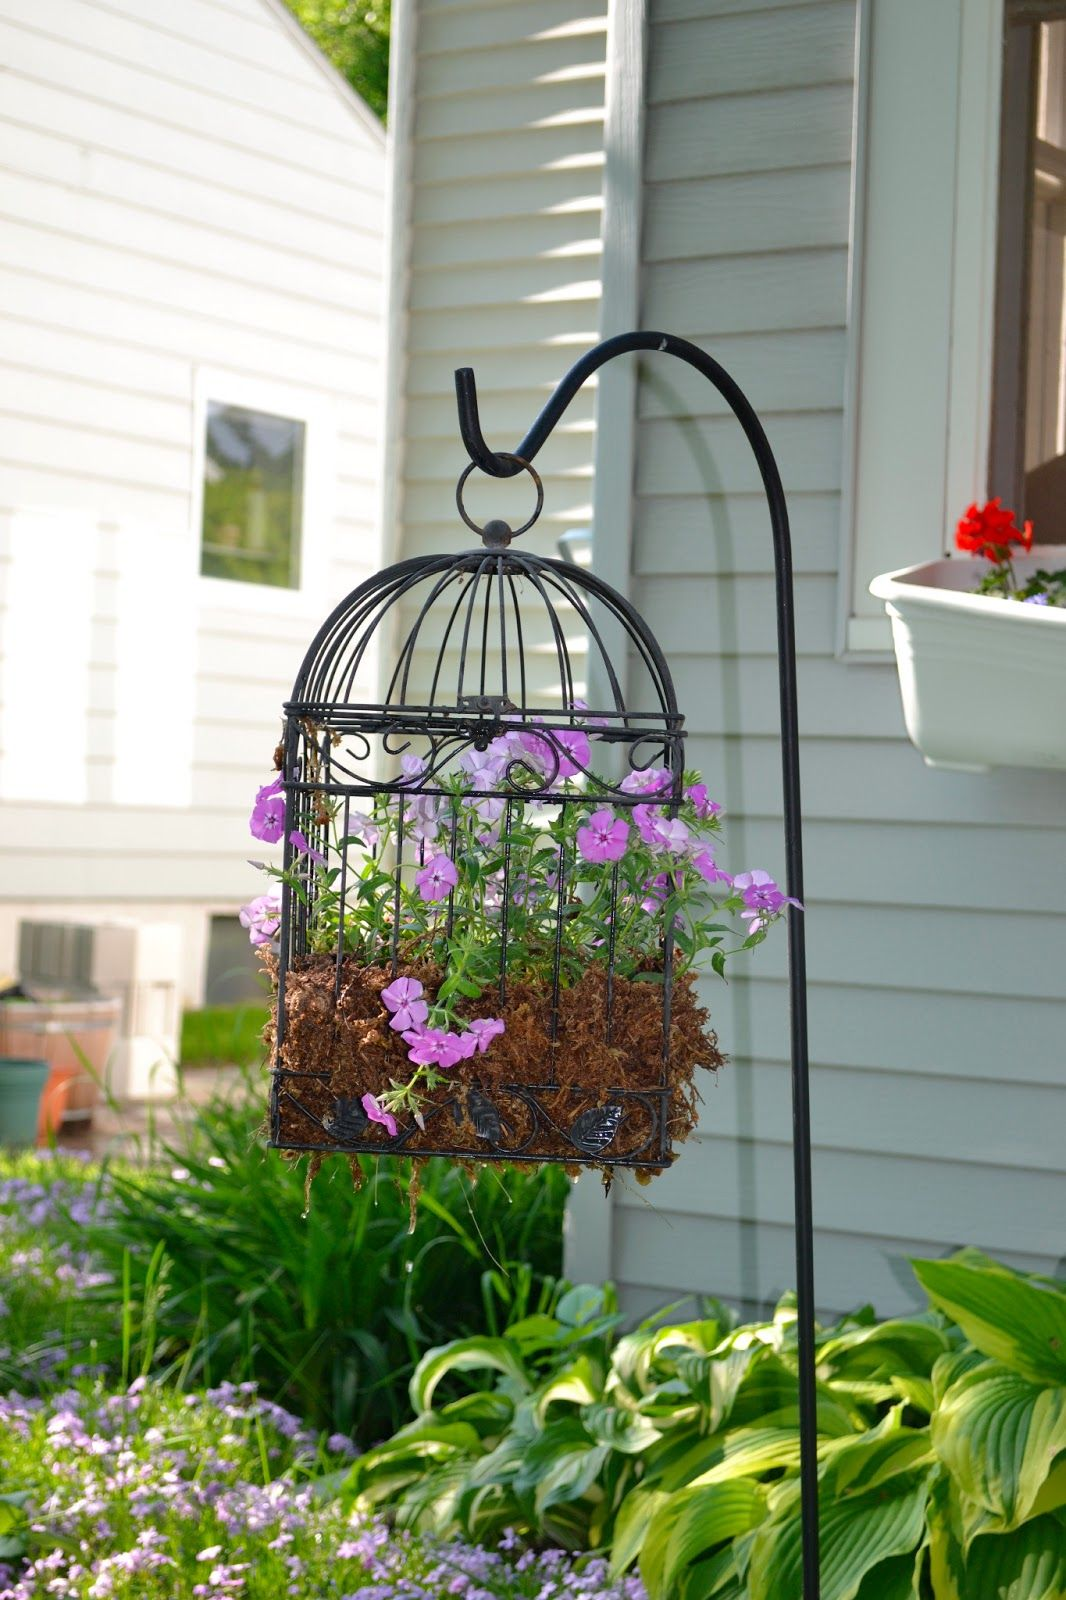 Our House in the Middle of Our Street Bird Cage Planter